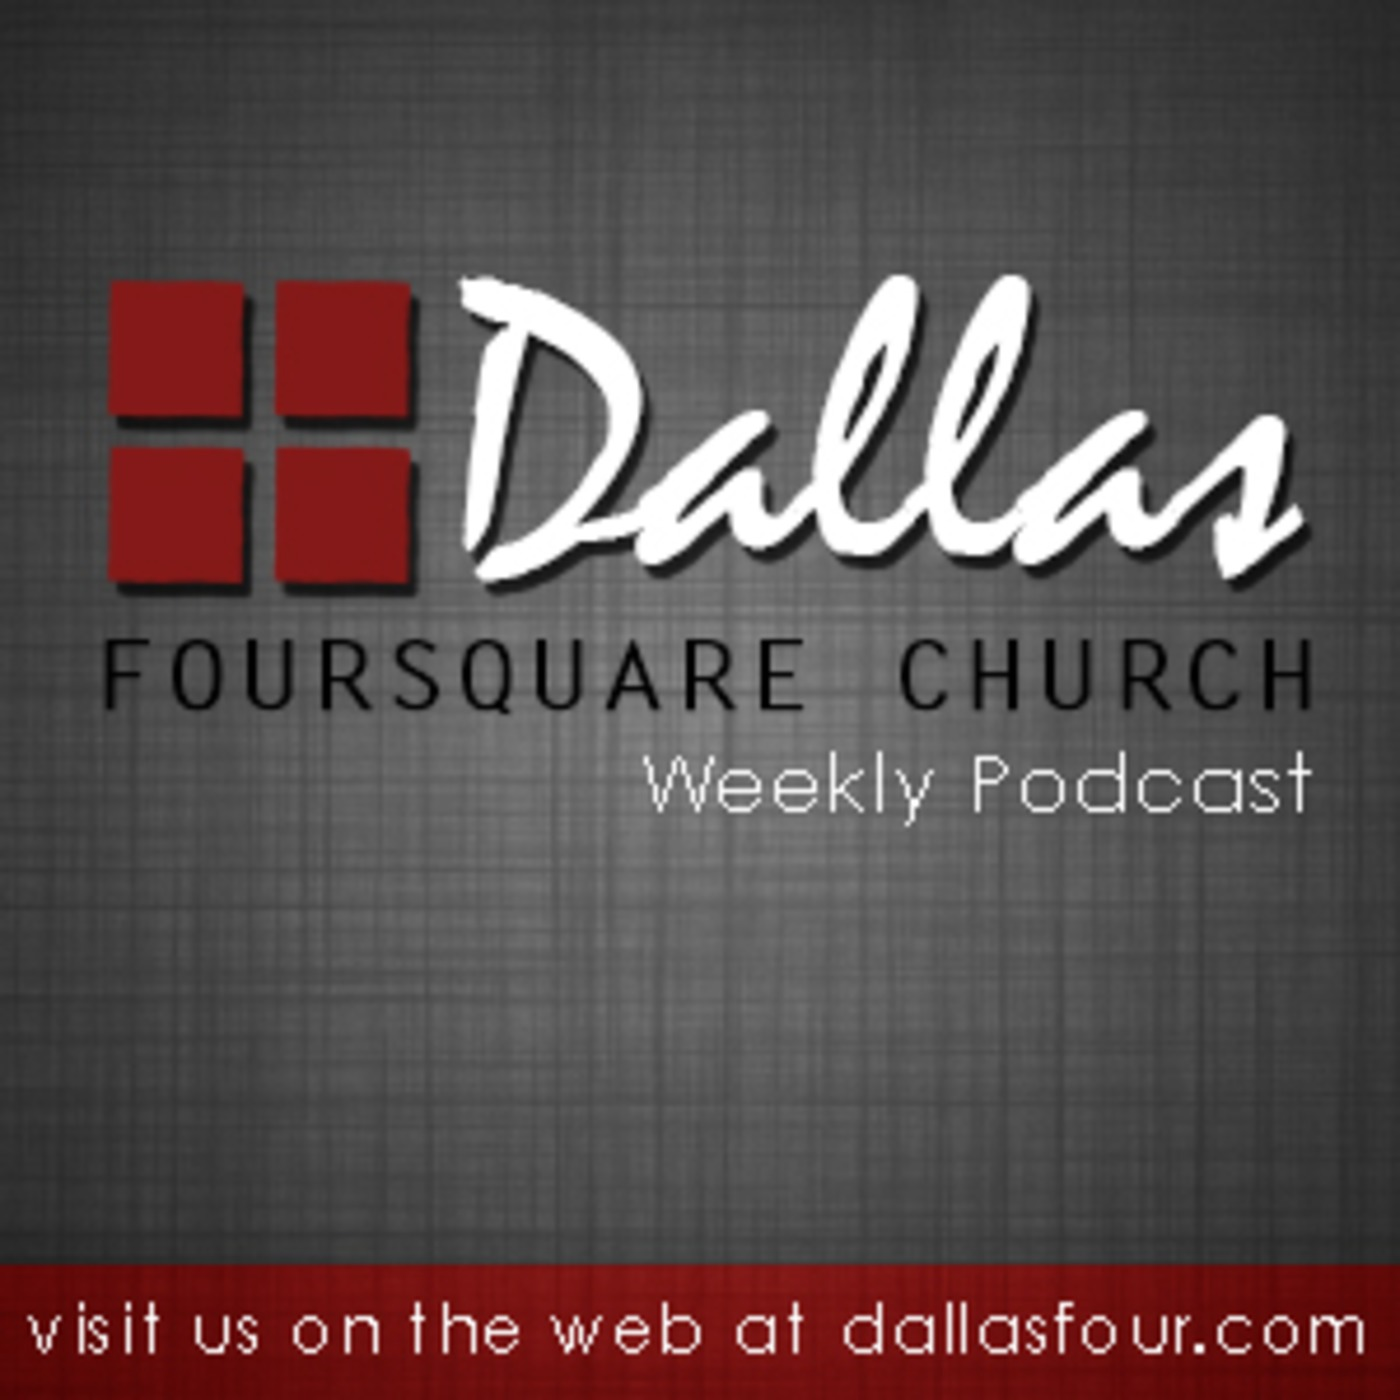 Dallas Foursquare Church